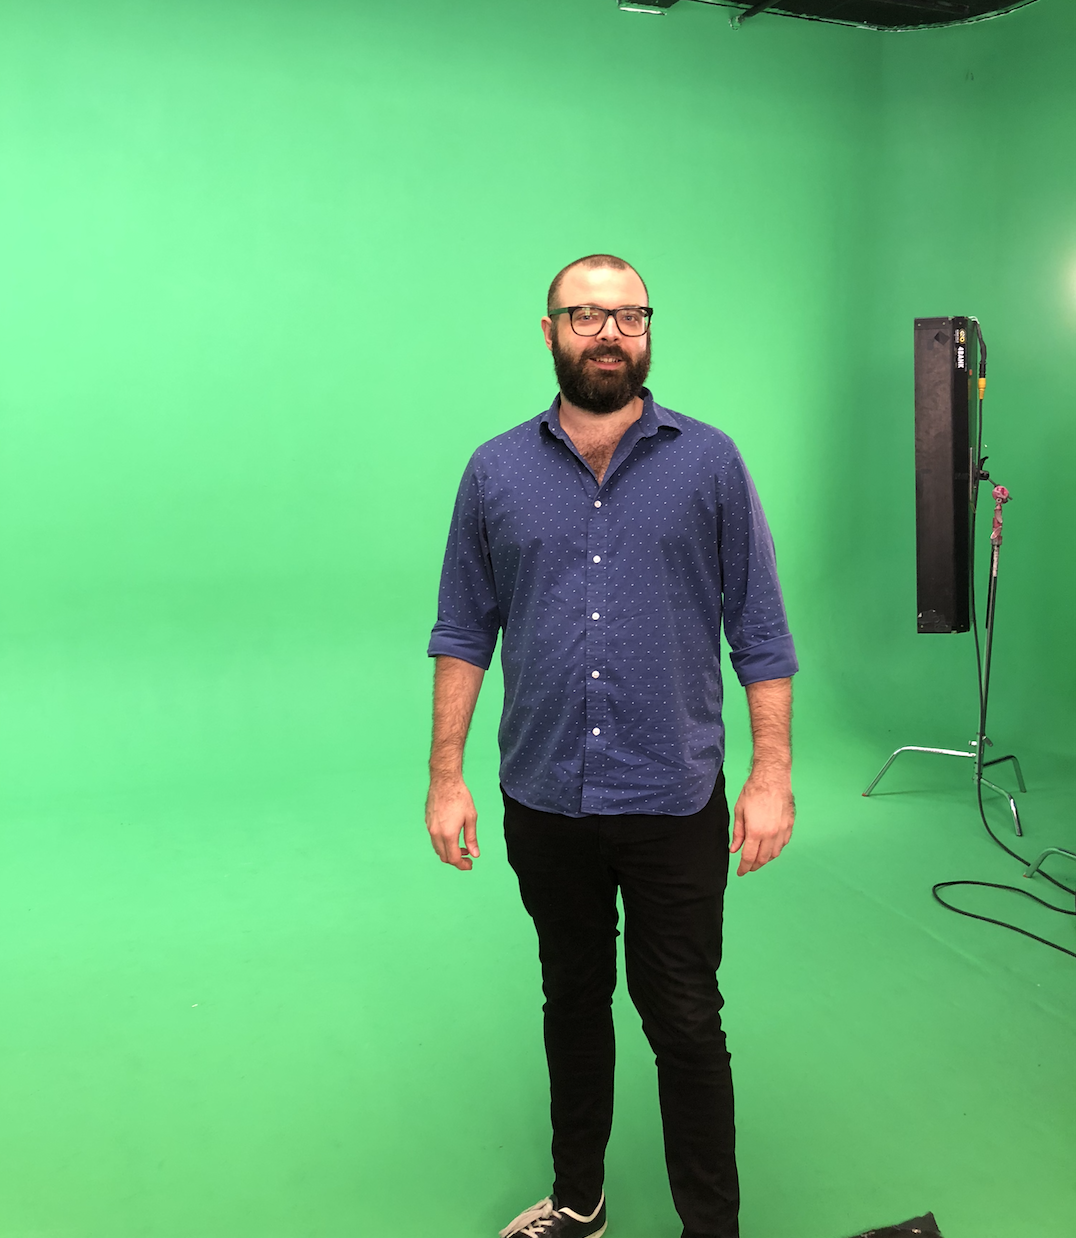 Hugo in front of green screen